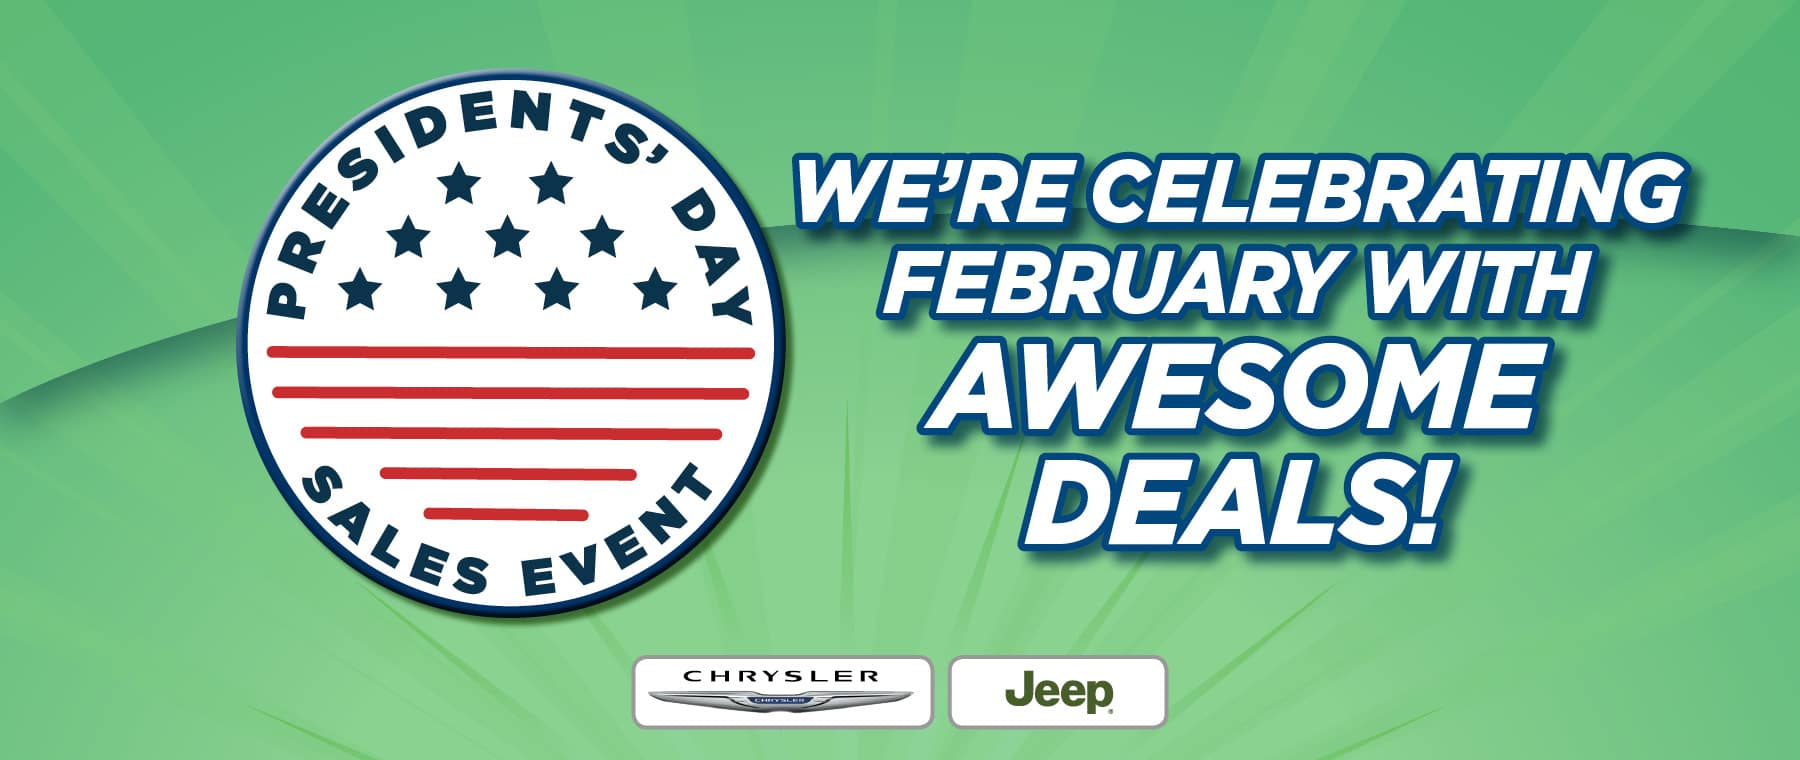 February Awesome Deals